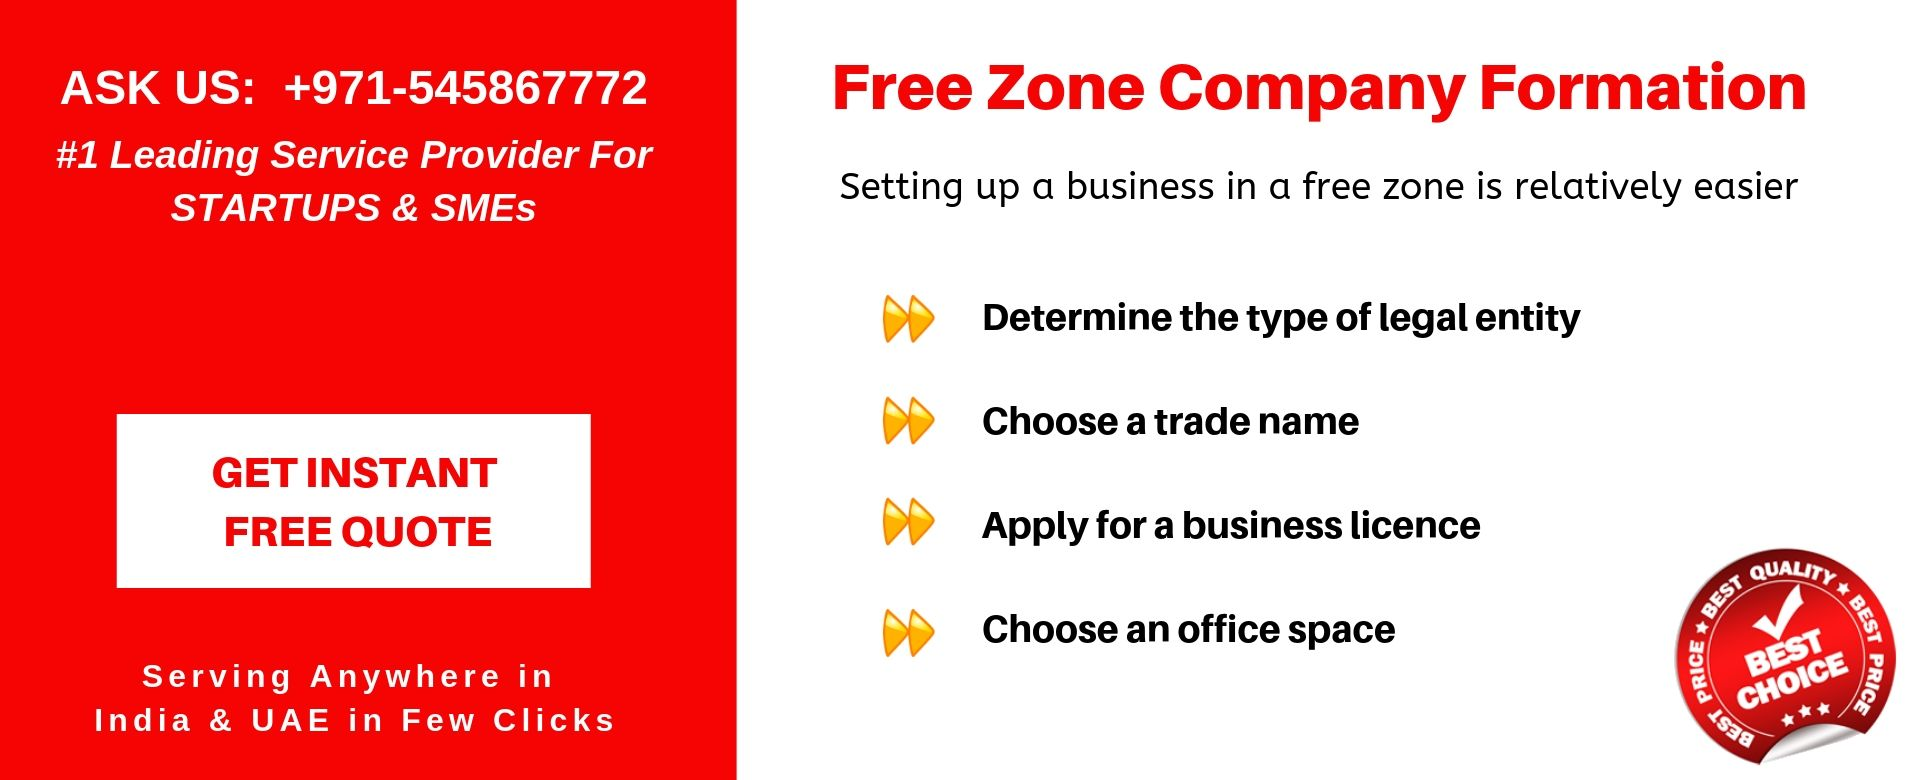 free zone company formation in uae